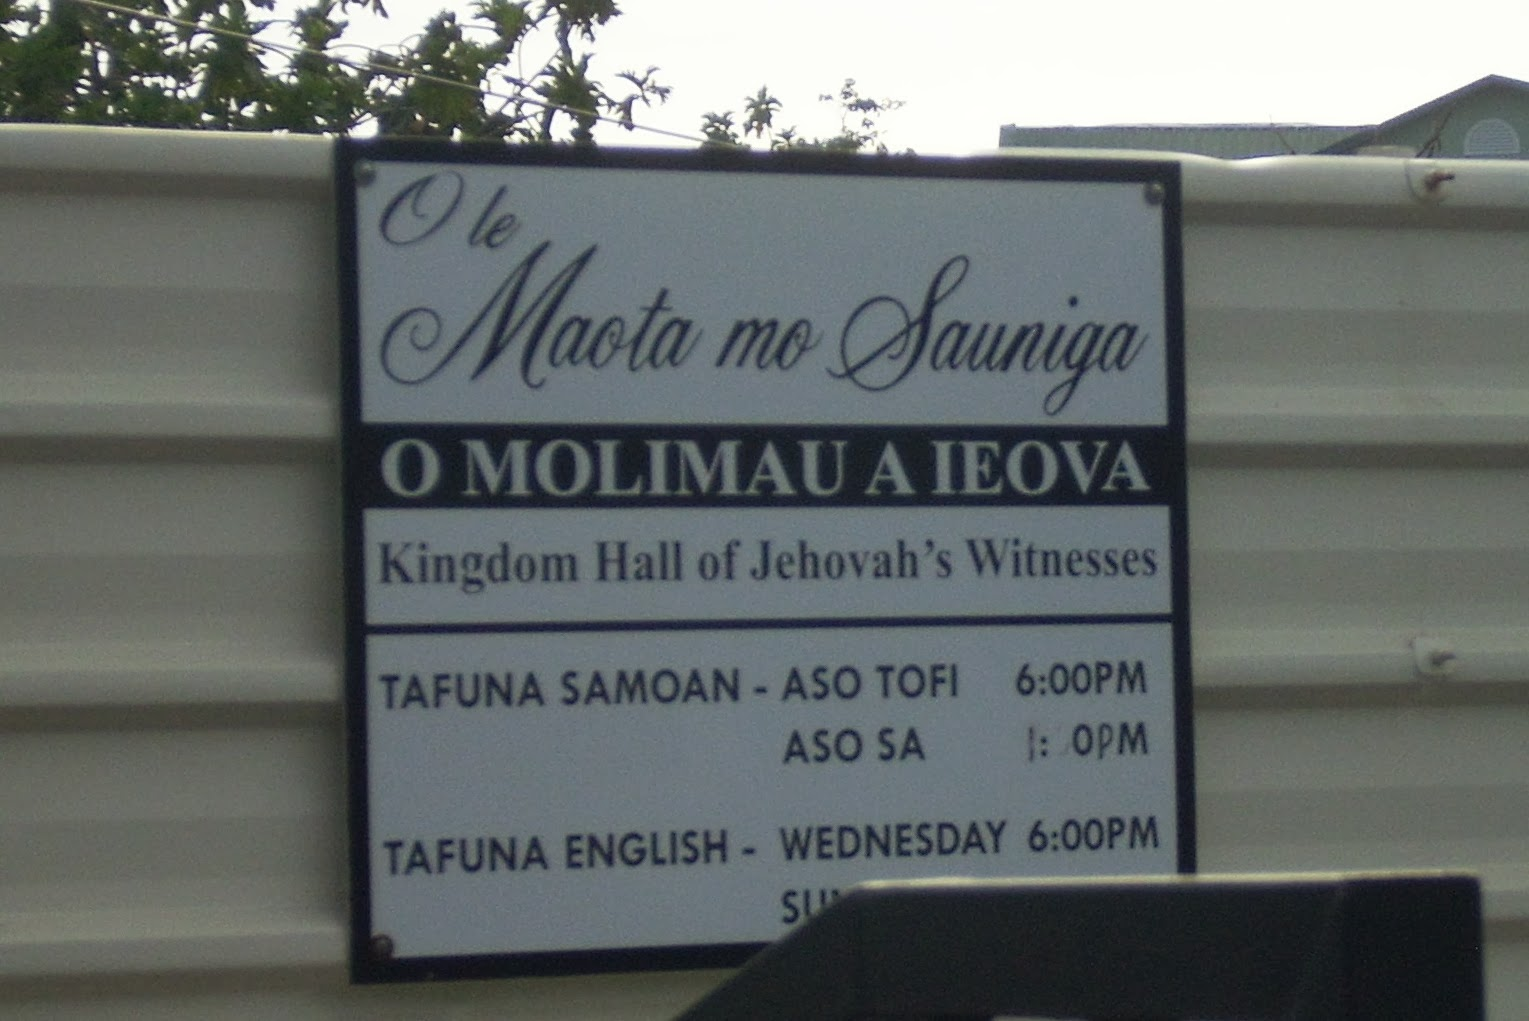 Better with age coming of age in american samoa american samoa s motto is muamua le atua let god be first ieova is samoan for gods name jehovah m4hsunfo